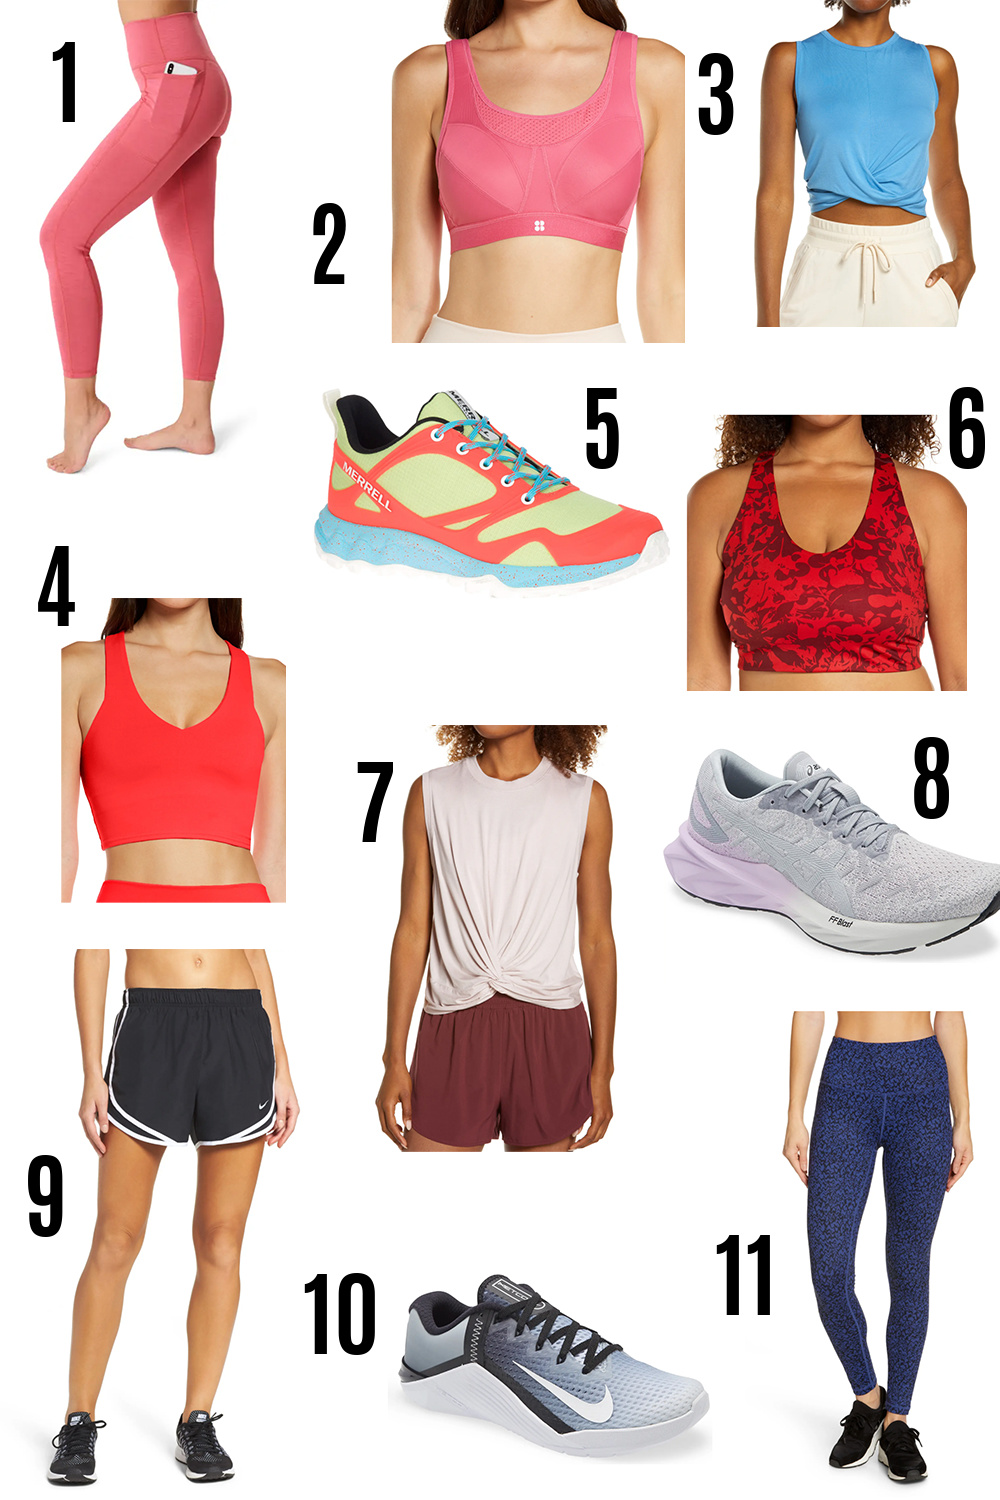 2021 Nordstrom Anniversary Sale Guide I Workout Gear #fashionstyle #fitness